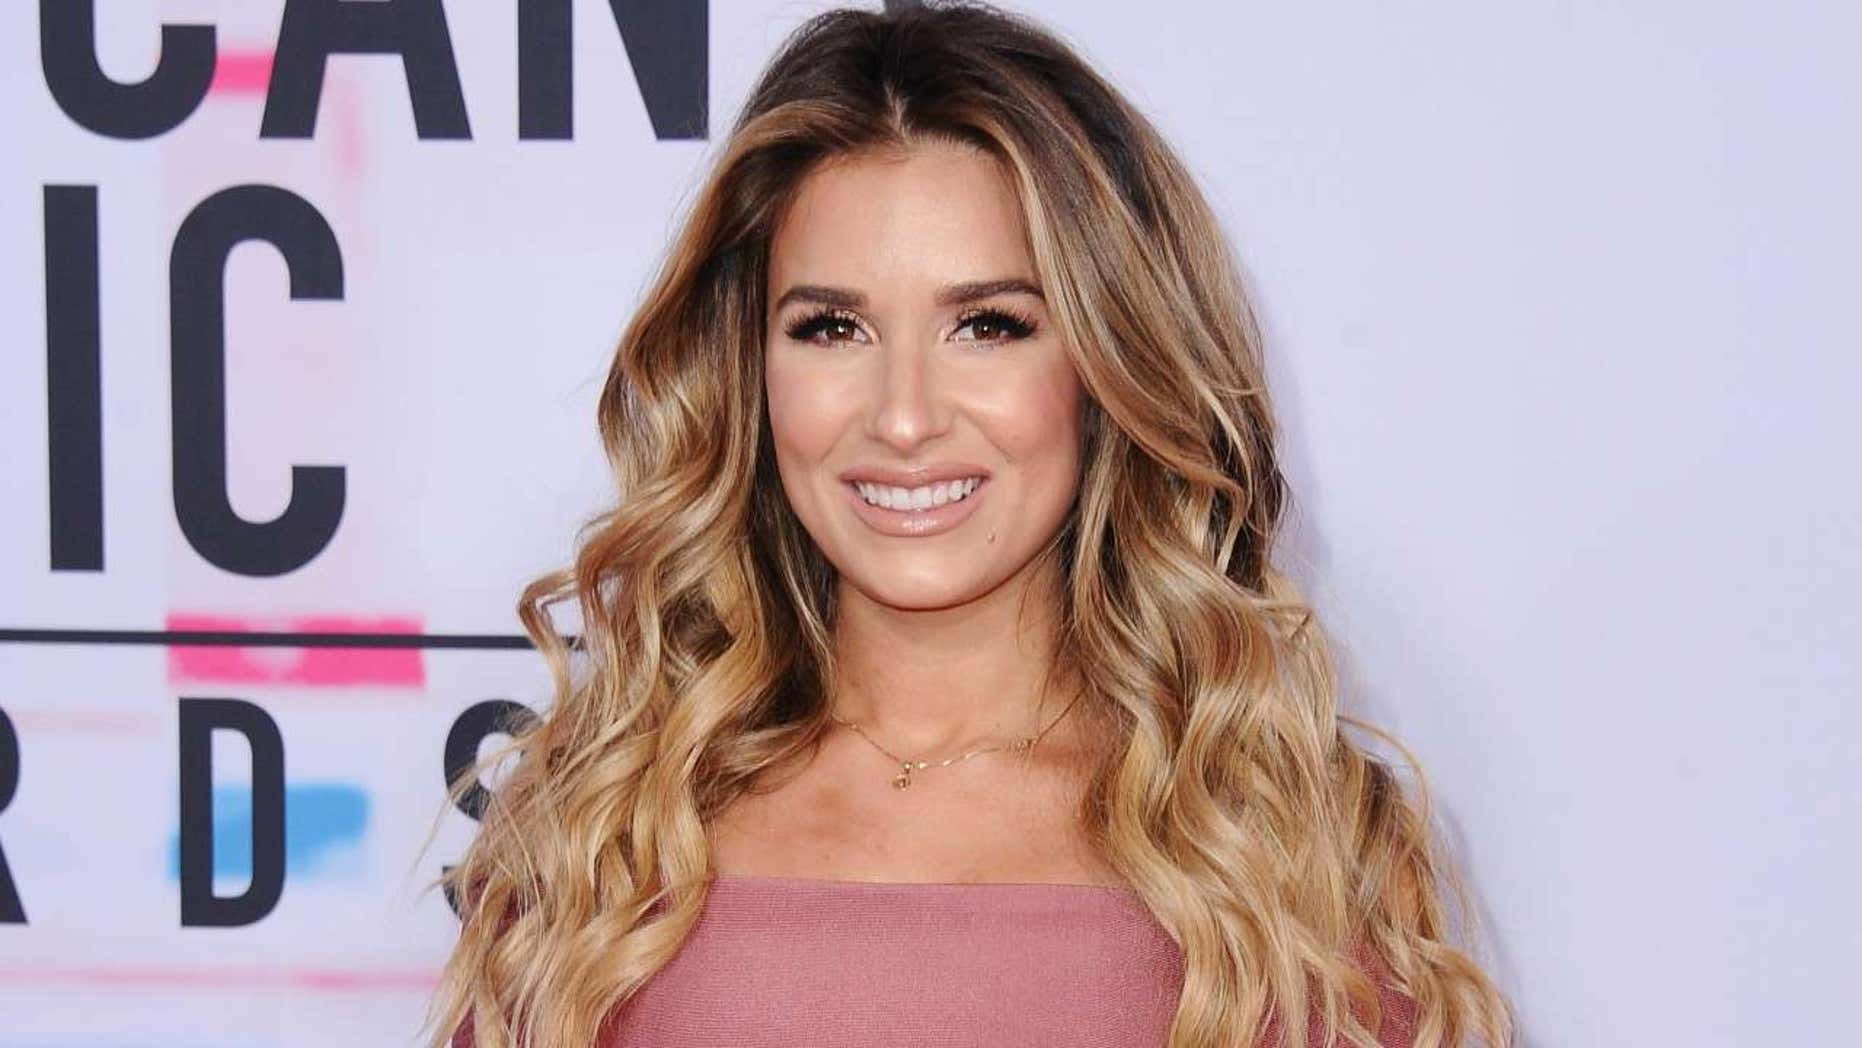 Jessie James Decker Opens Up About Post-pregnancy Weight Loss: 'I Definitely Struggled'